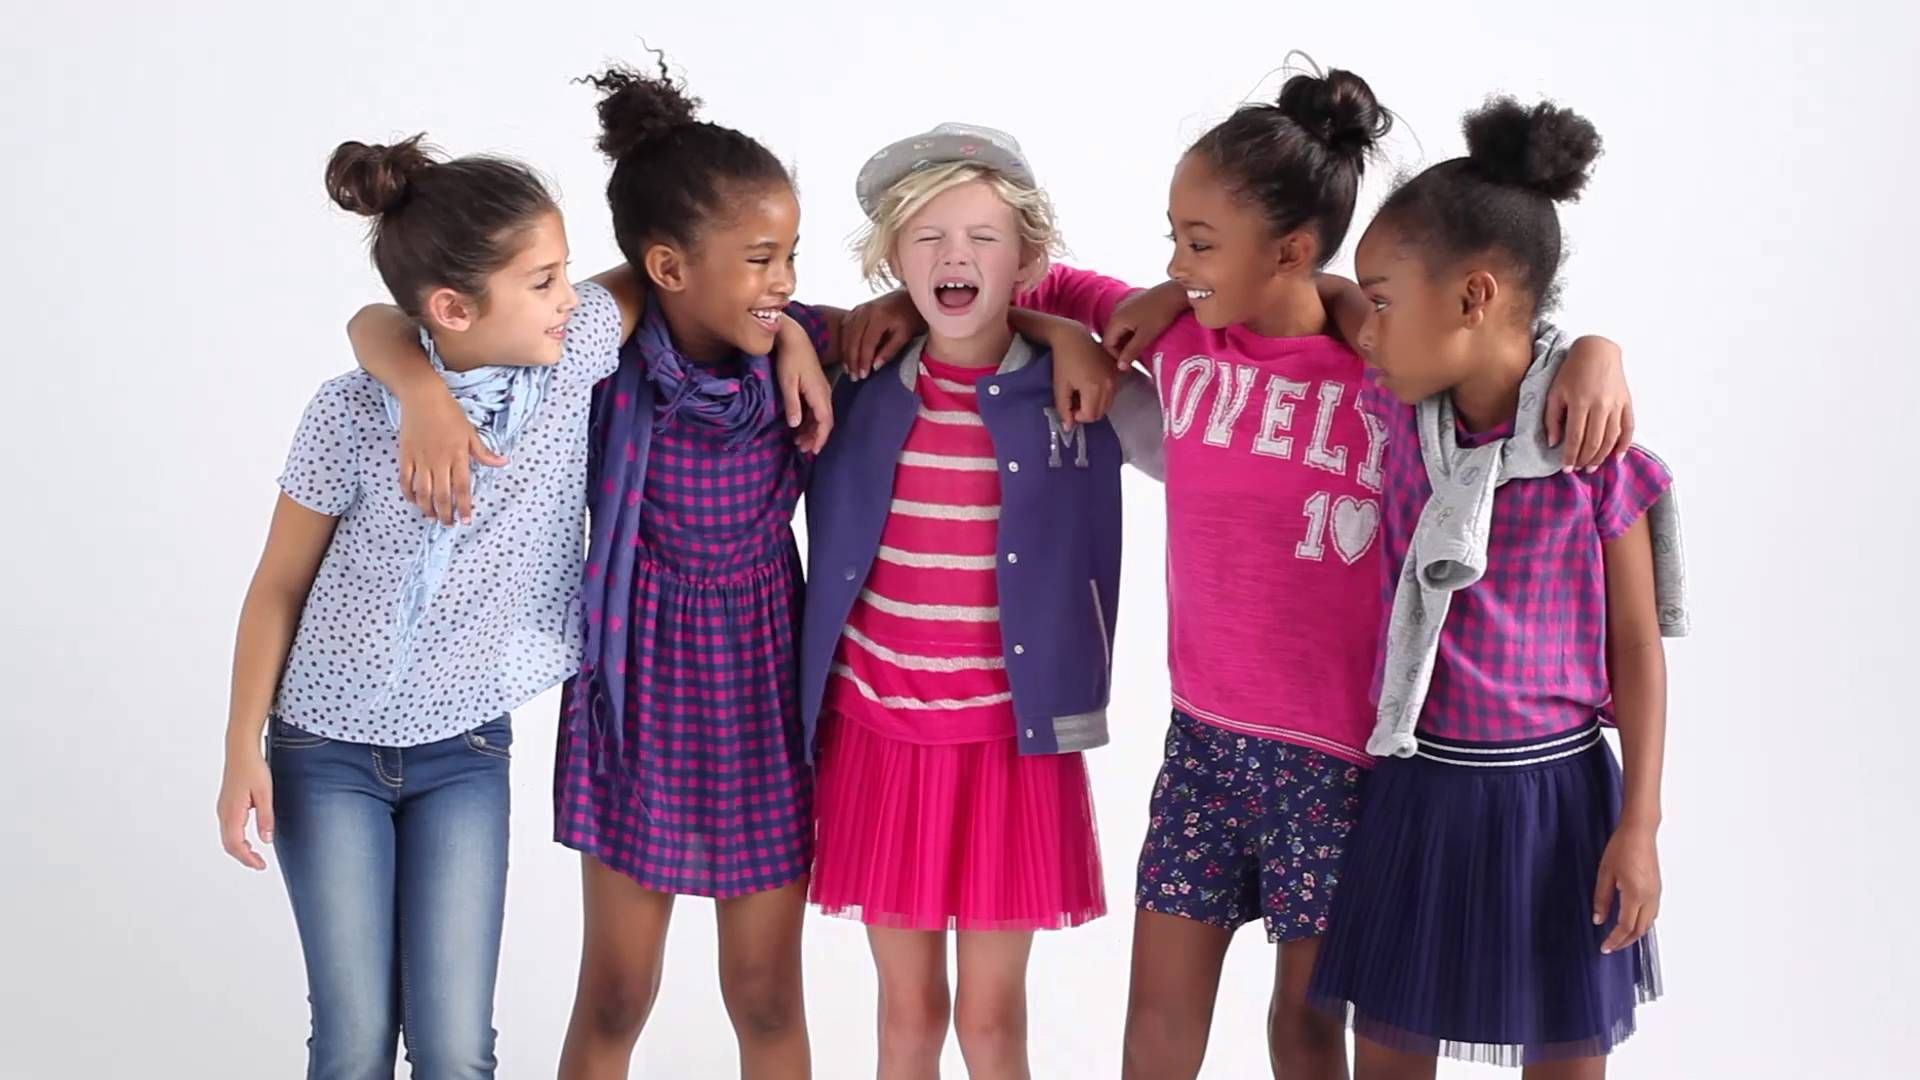 a0d74b6c2 United Colors of Benetton Spring Summer 2016 Kids Campaign | Vídeo ...